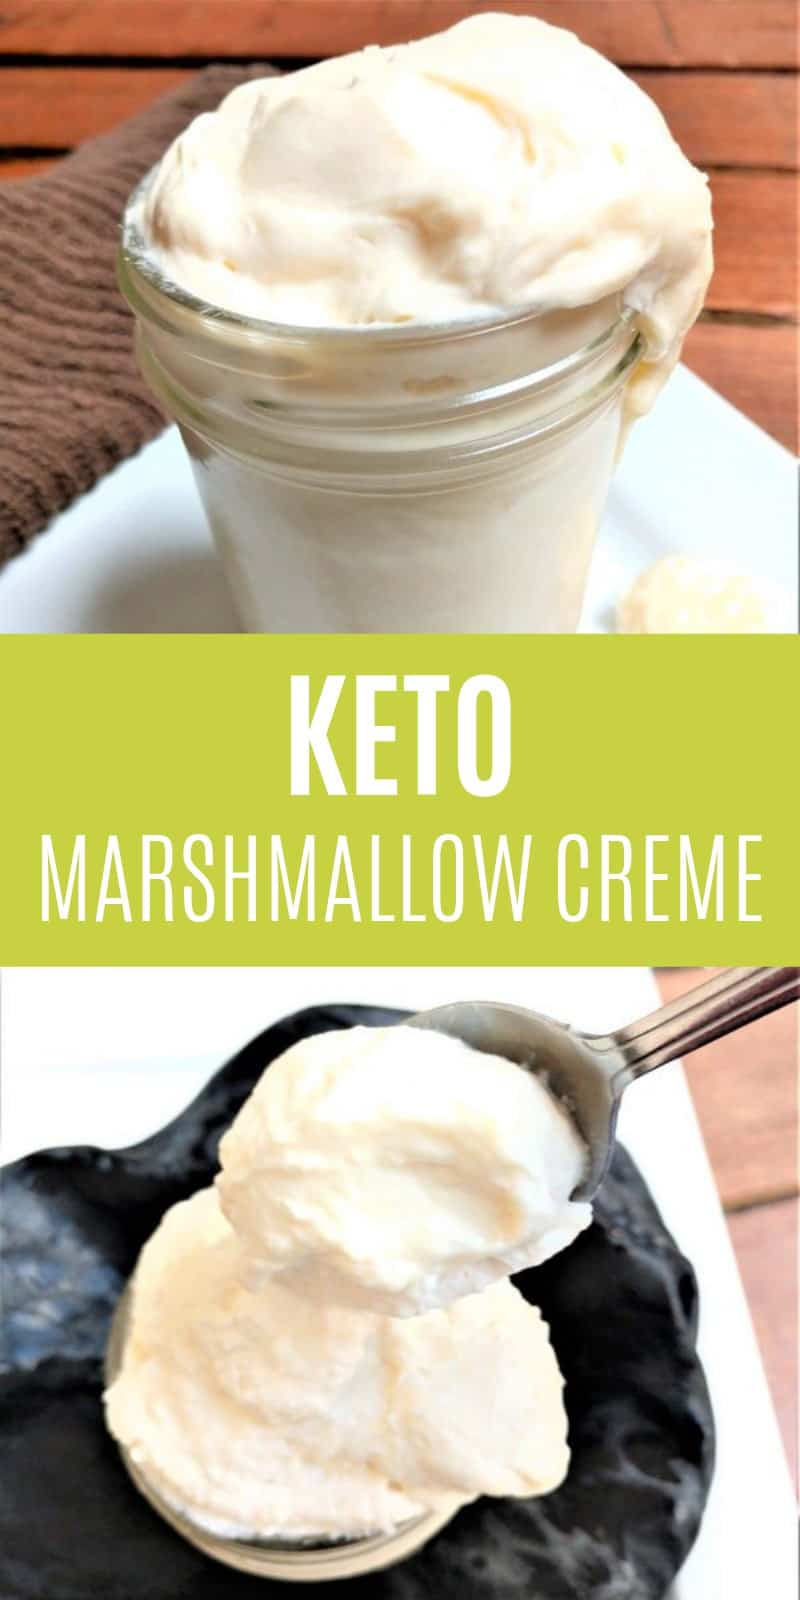 This keto marshmallow creme is delicious and brings back so many memories from my childhood! What comes to mind when you come across a jar of jet-puffed marshmallow creme?